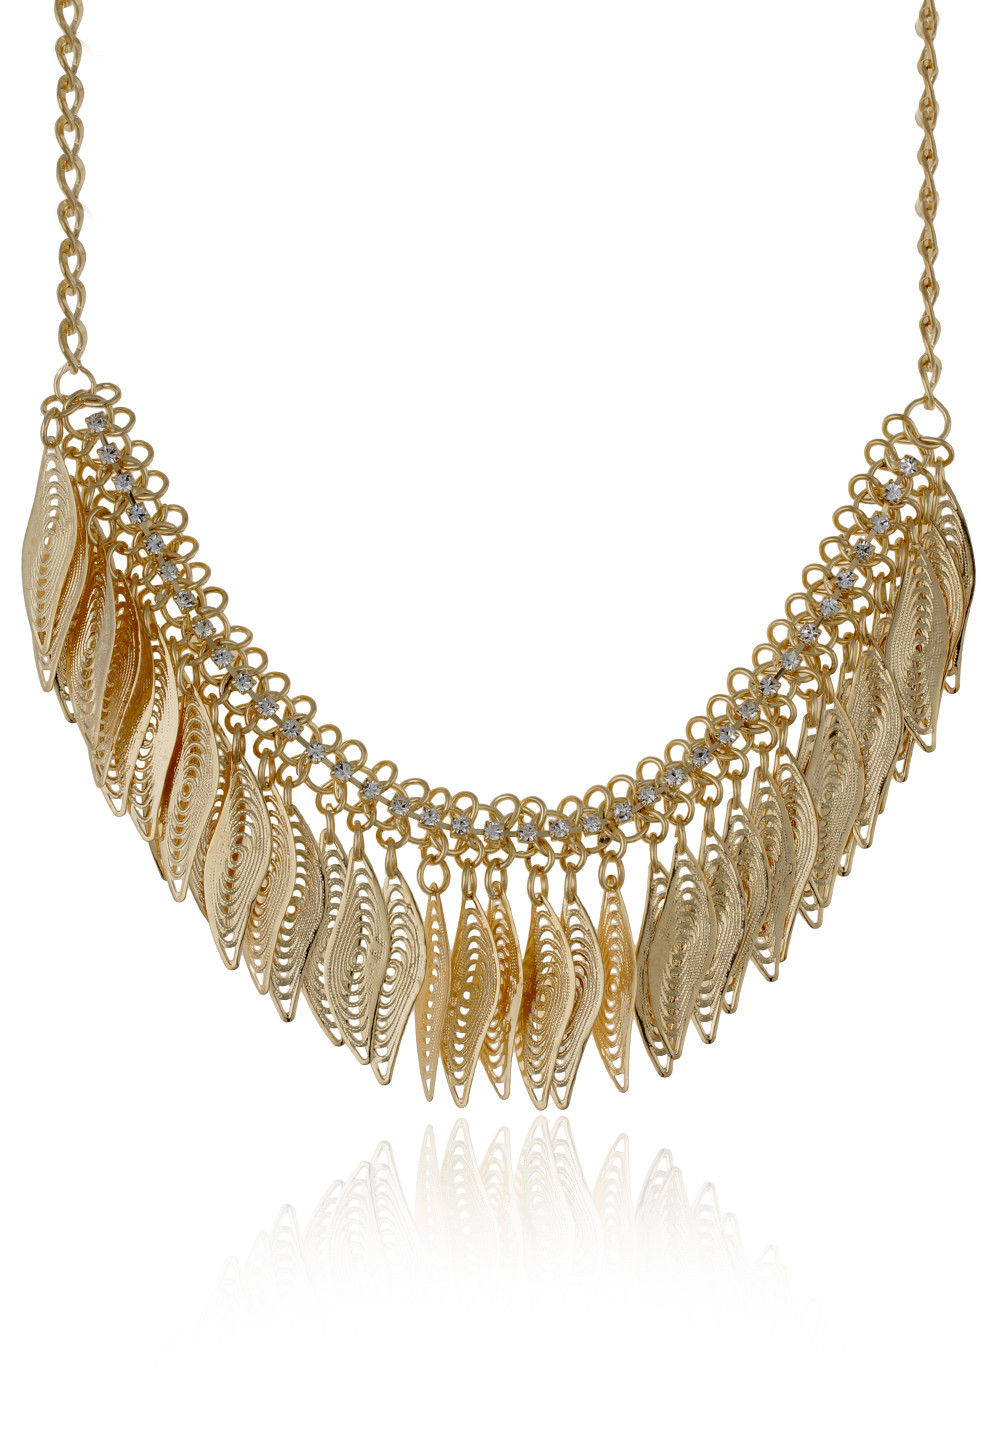 Metallic Necklace in Golden